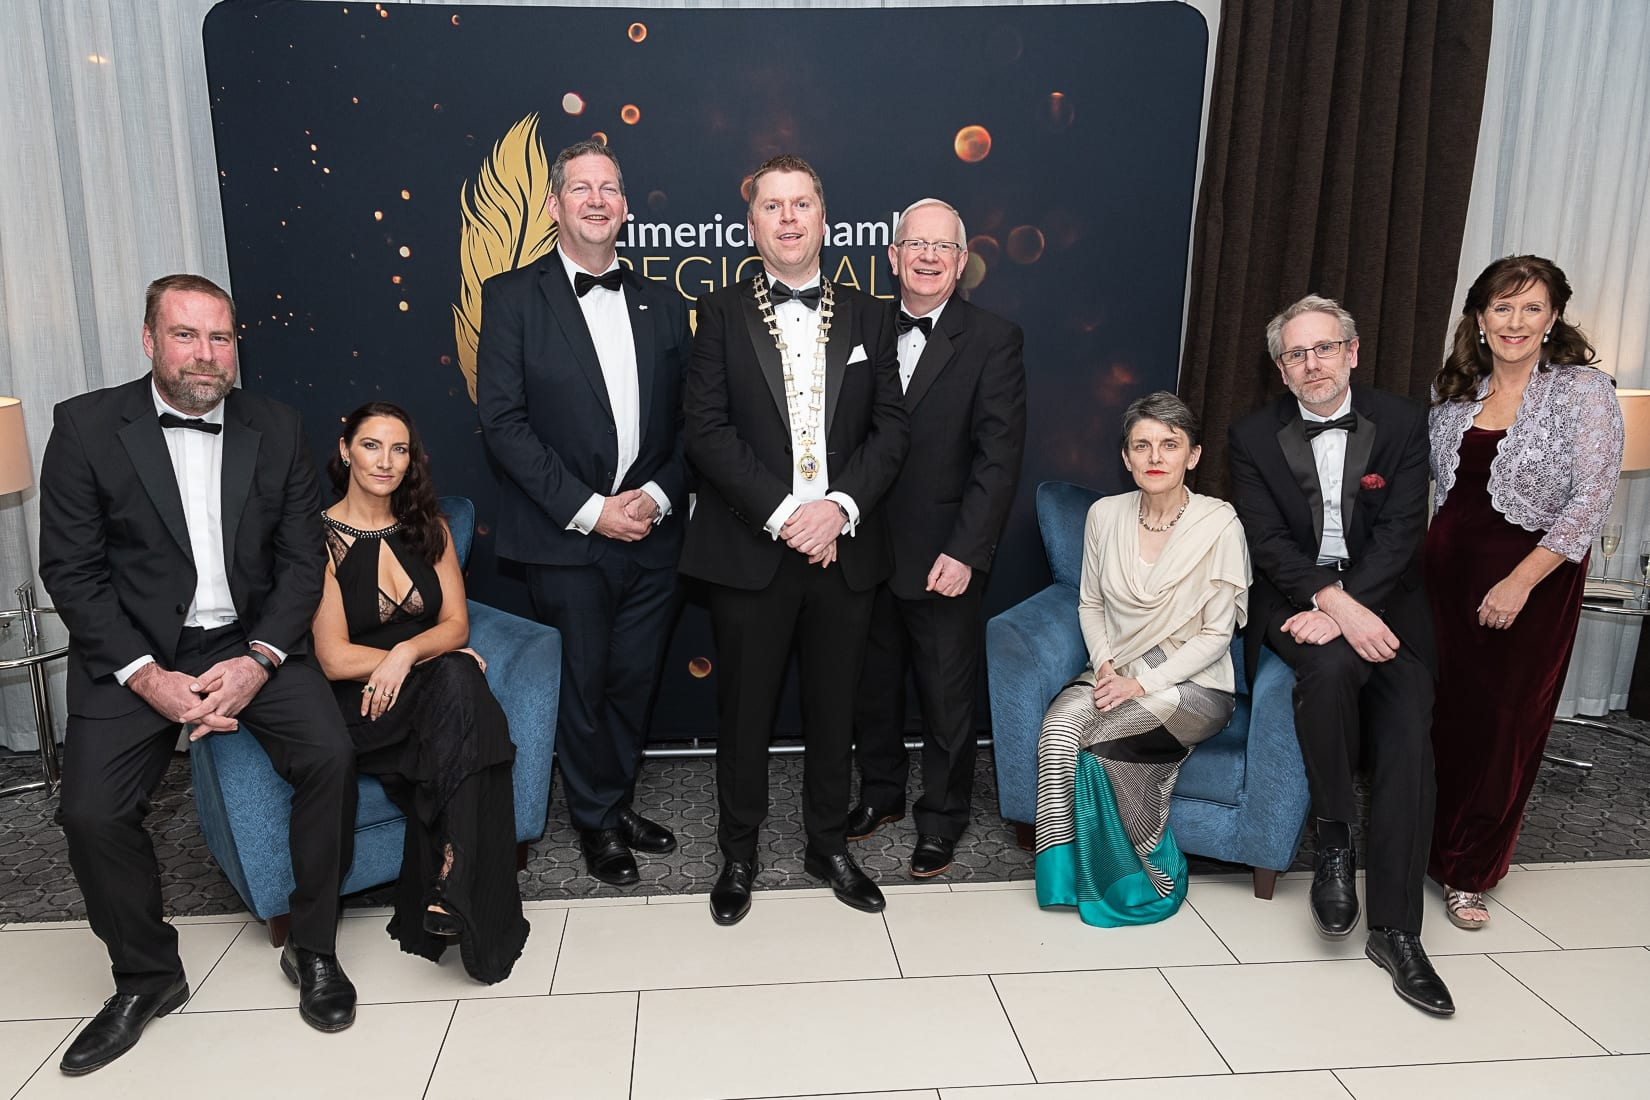 No repro fee-Limerick Chamber President's Dinner and Limerick Chamber Regional Business Awards 2019 which was held in the Strand Hotel on Friday 15th November /  Limerick Institute of Technology Sponsors/  - From Left to Right:  Philip Hennessy -LIT, Gillian Barry - LIT, Dr Liam Browne - Vice President LIT,  Eoin Ryan - President Limerick Chamber, Professor Vincent Cunnane- President LIT, Frances O'Connell - LIT, James Griffin - LIT, Carole Glynn  - LIT  Photo credit Shauna Kennedy